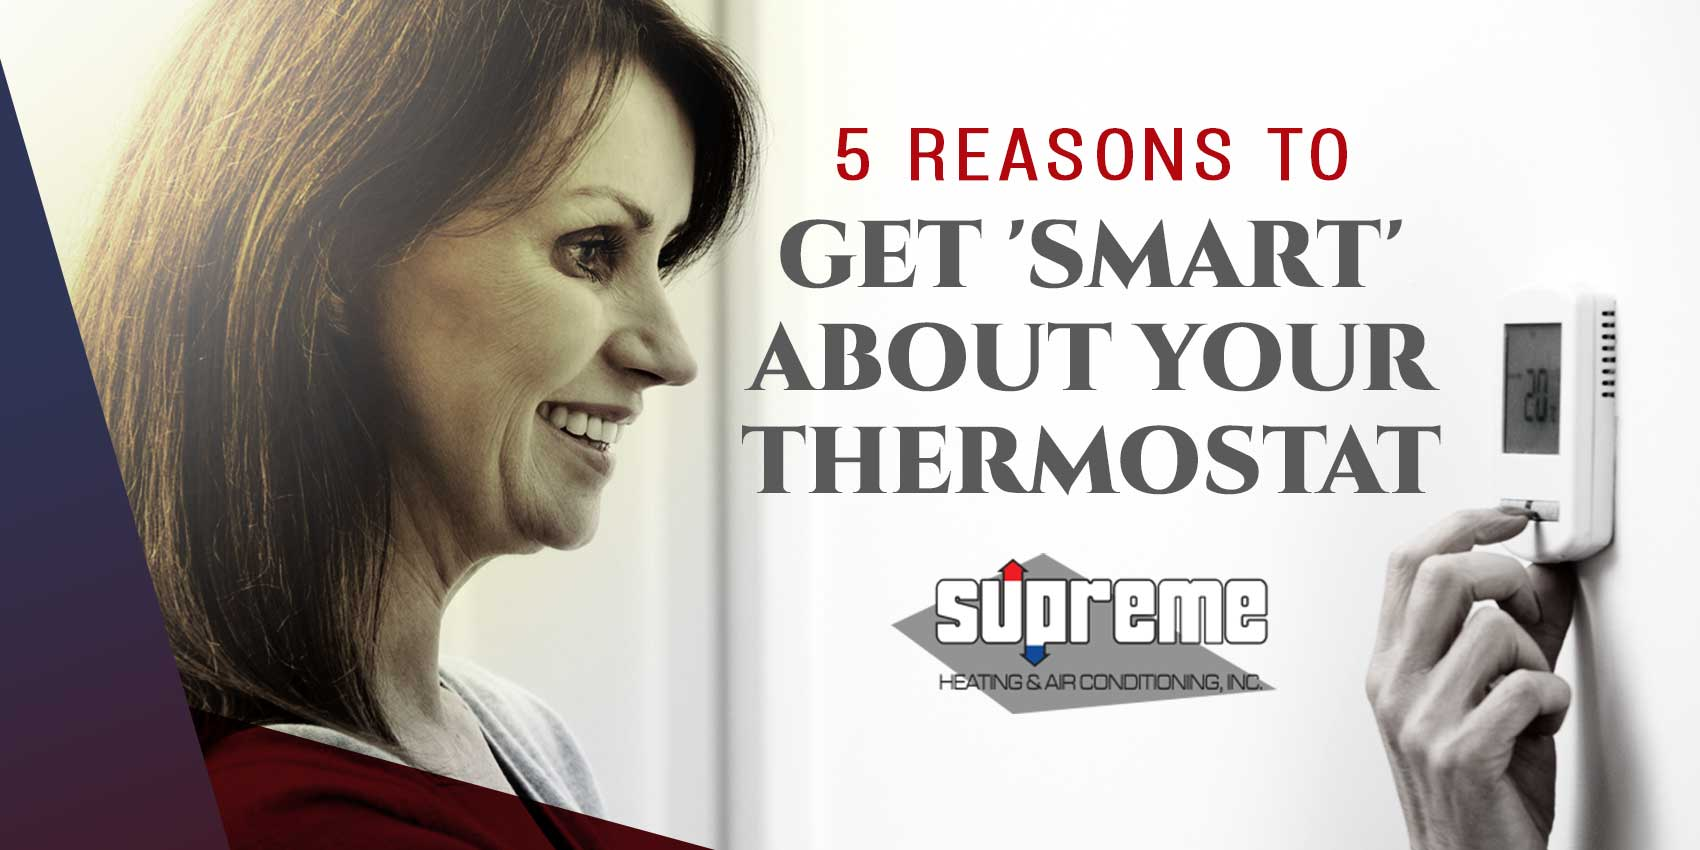 5 Reasons To Get 'Smart' About Your Thermostat